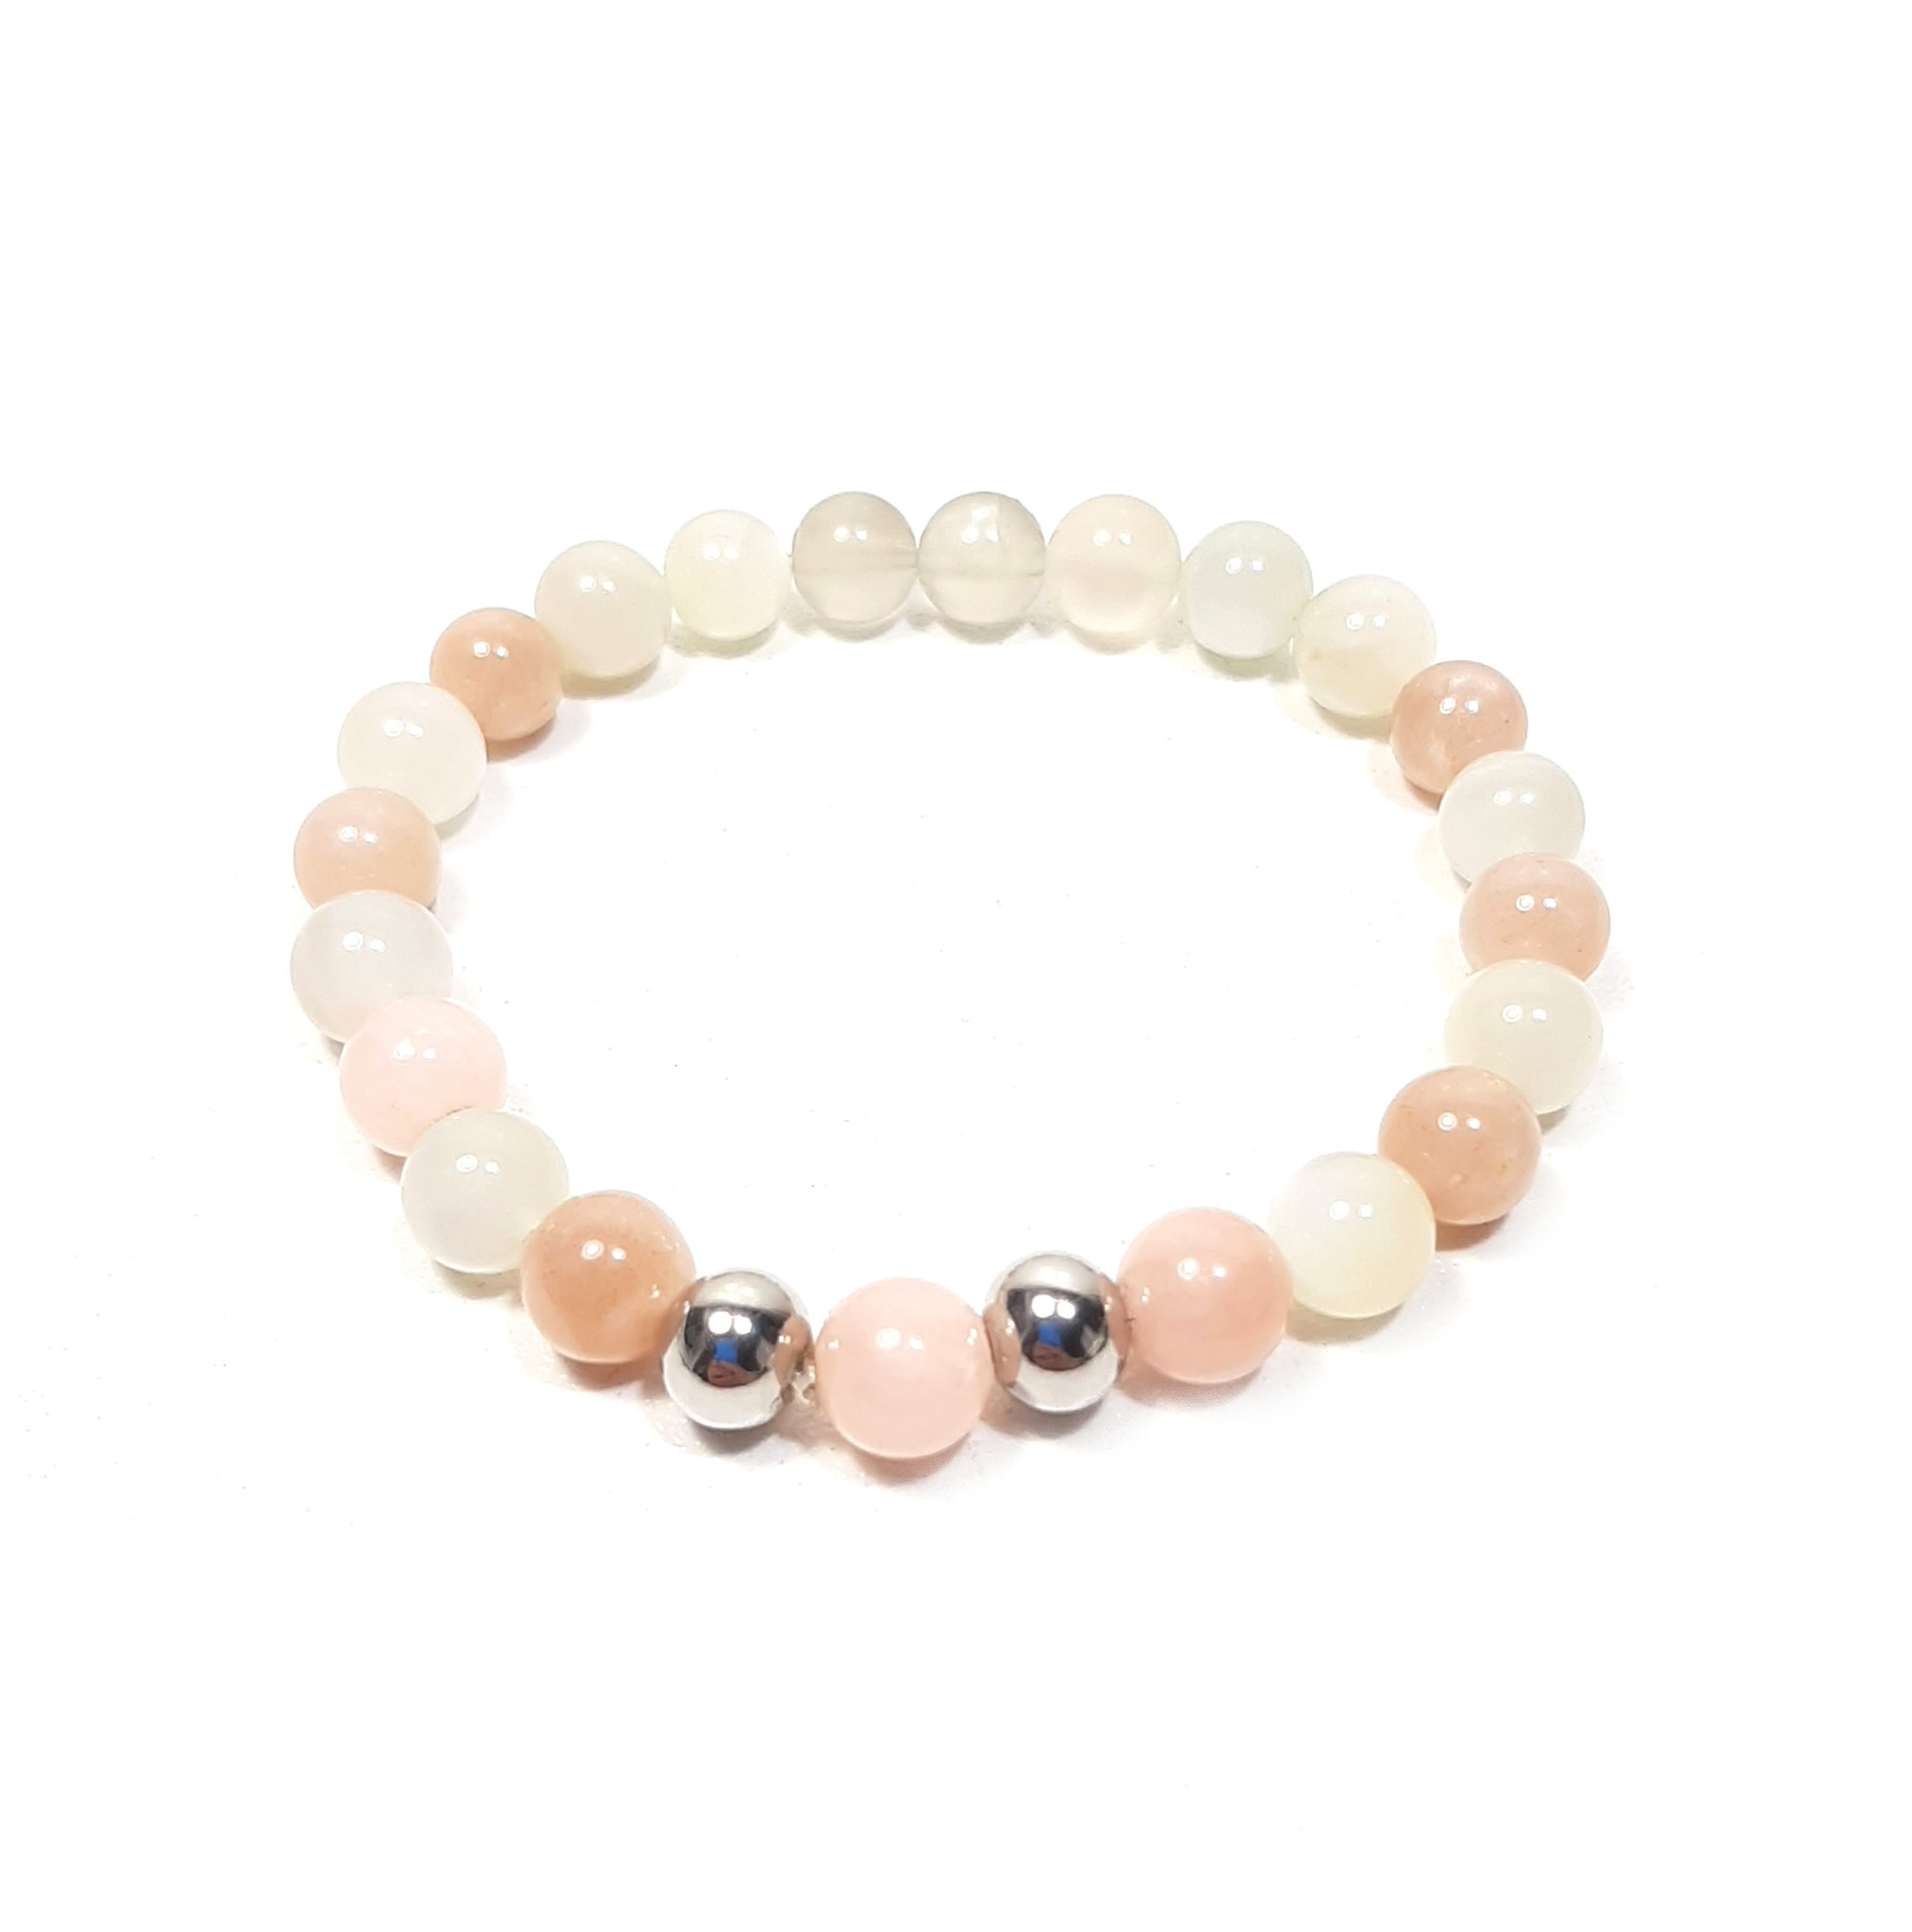 Sazou Jewels Armband Natural Stones Witte en Roze Agaat - Stainless Steel